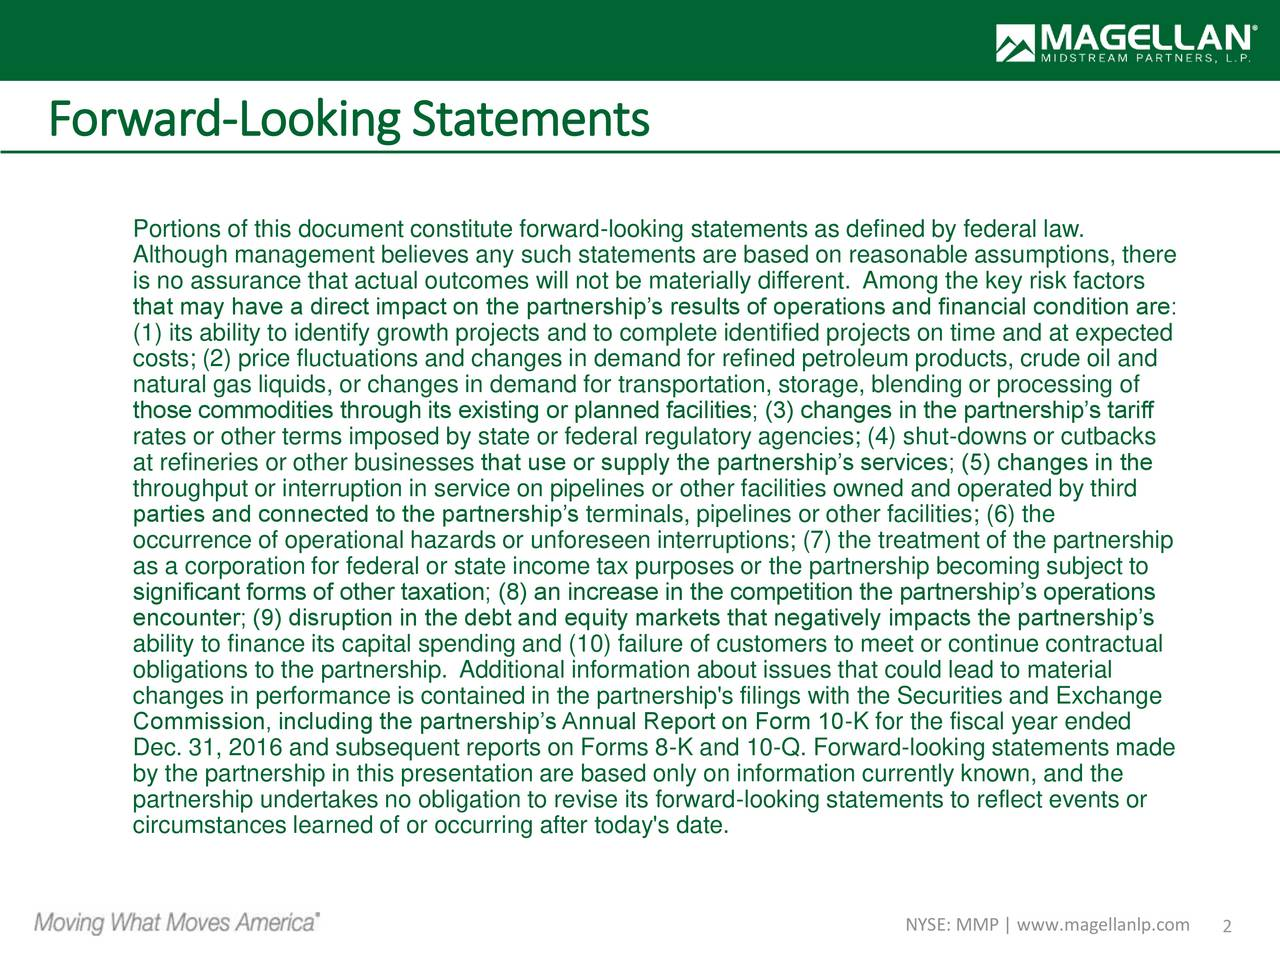 Portions of this document constitute forward-looking statements as defined by federal law. Although management believes any such statements are based on reasonable assumptions, there is no assurance that actual outcomes will not be materially different. Among the key risk factors that may have a direct impact on the partnerships results of operations and financial condition are: (1) its ability to identify growth projects and to complete identified projects on time and at expected costs; (2) price fluctuations and changes in demand for refined petroleum products, crude oil and natural gas liquids, or changes in demand for transportation, storage, blending or processing of those commodities through its existing or planned facilities; (3) changes in the partnerships tariff rates or other terms imposed by state or federal regulatory agencies; (4) shut-downs or cutbacks at refineries or other businesses that use or supply the partnerships services; (5) changes in the throughput or interruption in service on pipelines or other facilities owned and operated by third parties and connected to the partnerships terminals, pipelines or other facilities; (6) the occurrence of operational hazards or unforeseen interruptions; (7) the treatment of the partnership as a corporation for federal or state income tax purposes or the partnership becoming subject to significant forms of other taxation; (8) an increase in the competition the partnerships operations encounter; (9) disruption in the debt and equity markets that negatively impacts the partnerships ability to finance its capital spending and (10) failure of customers to meet or continue contractual obligations to the partnership. Additional information about issues that could lead to material changes in performance is contained in the partnership's filings with the Securities and Exchange Commission, including the partnerships Annual Report on Form 10-K for the fiscal year ended Dec. 31, 2016 and subsequent reports on Forms 8-